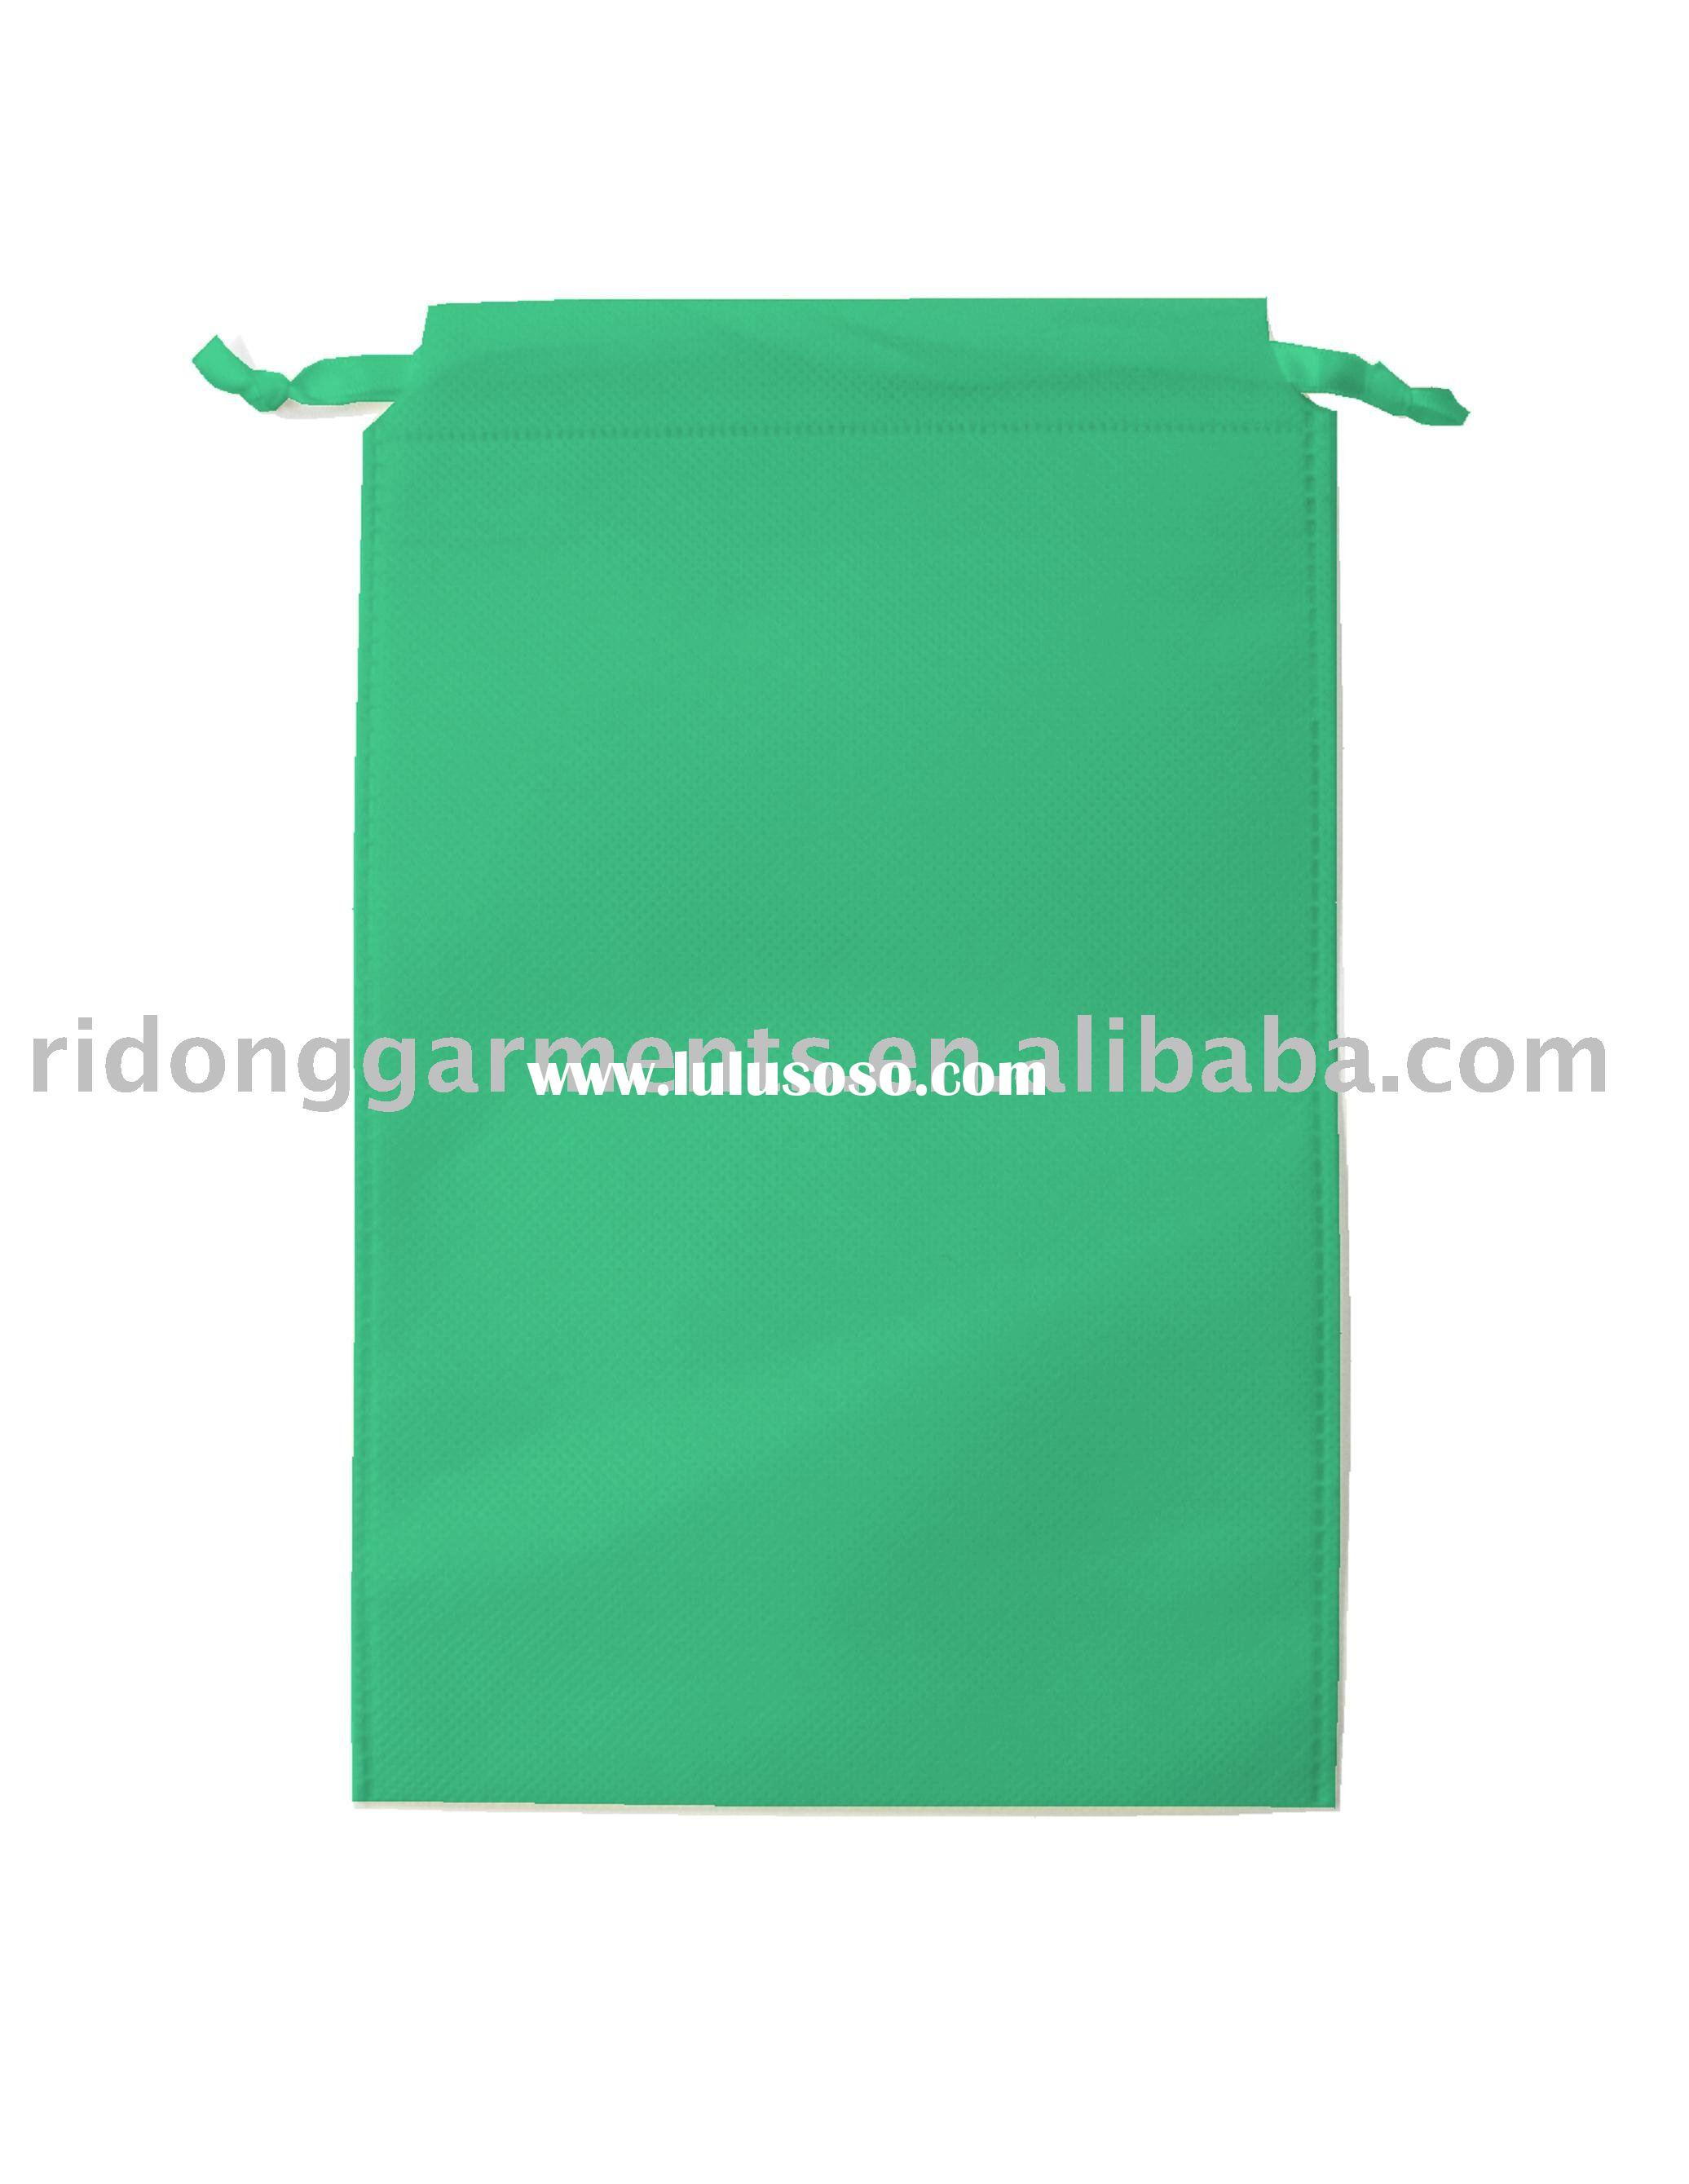 Nonwoven Corporate Giveaway Drawstring Pouch Bag